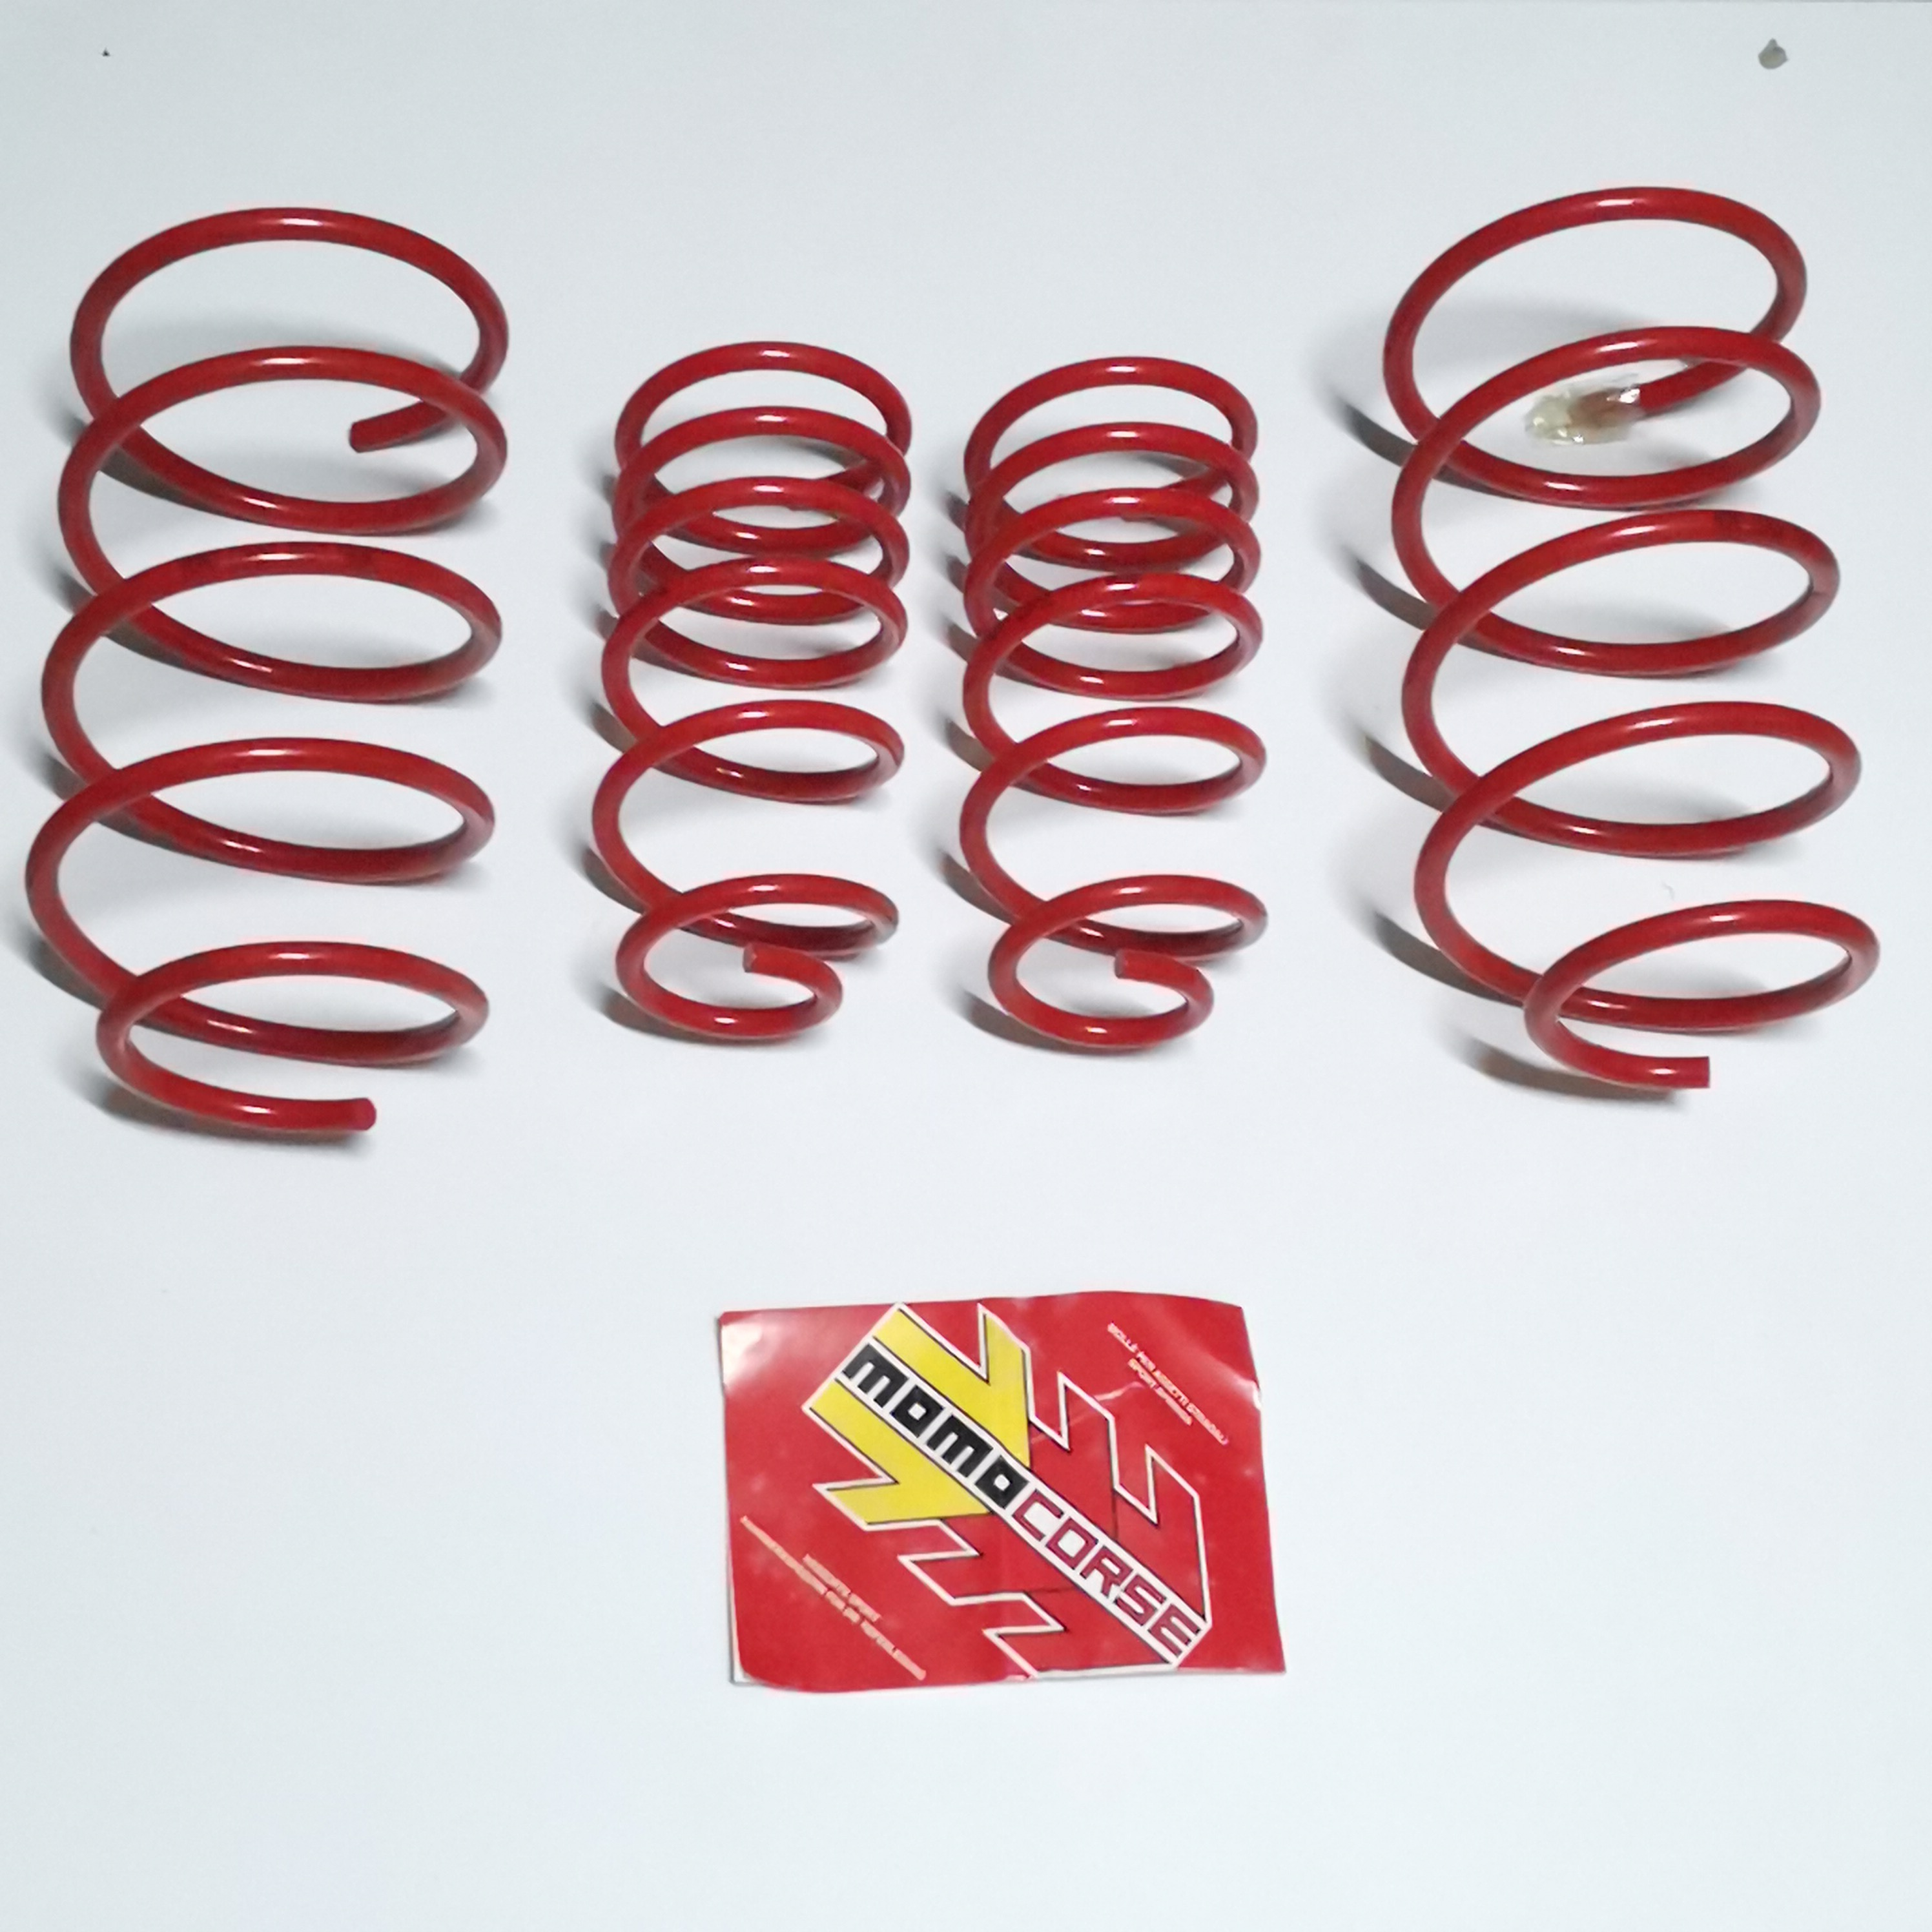 SPRING KIT FRONT AND POST. FIAT BRAVA - BRAVO MOMO CORSE F057